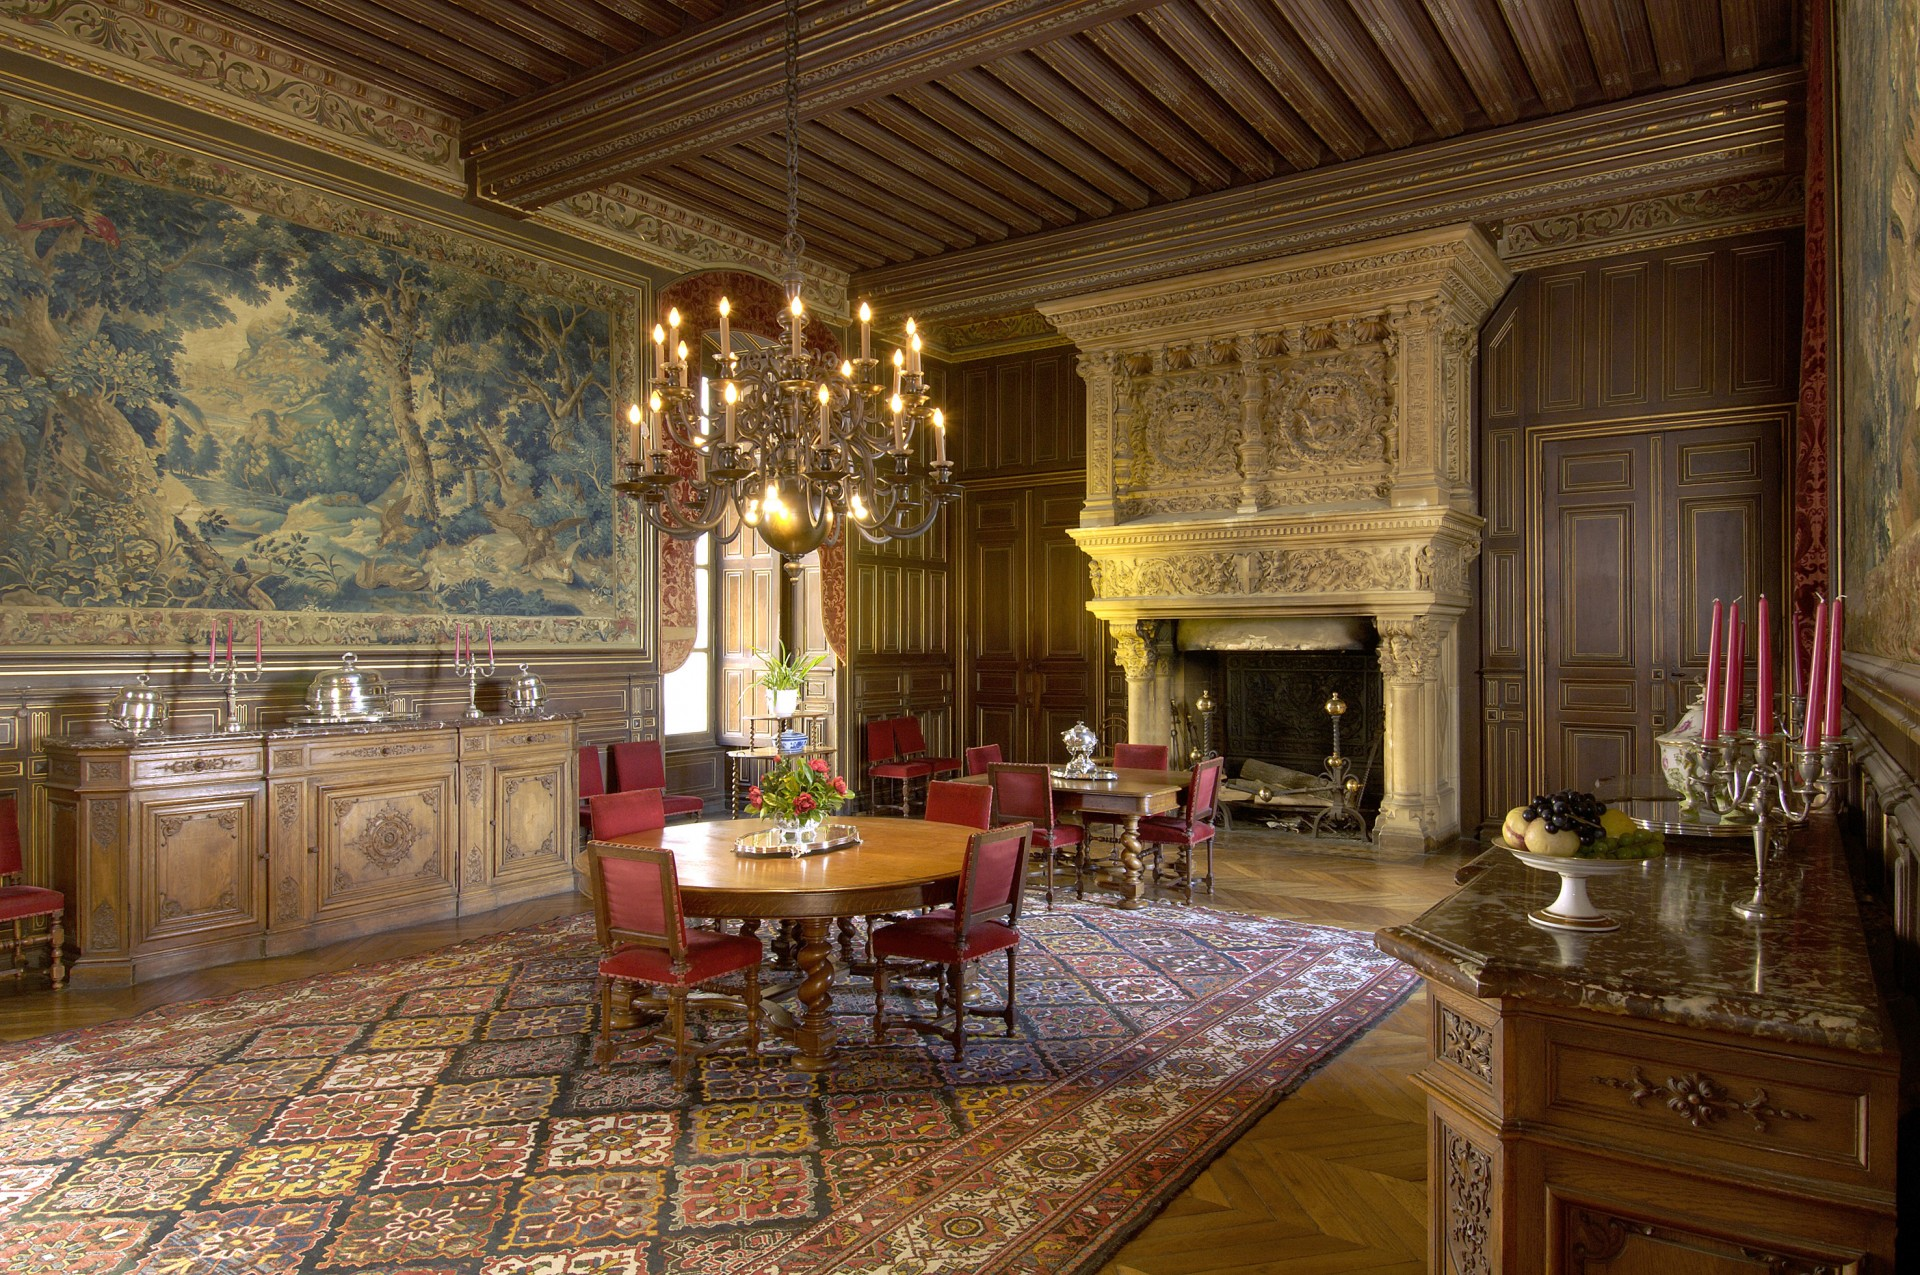 Dining_room_le_mans_24h_race_castle